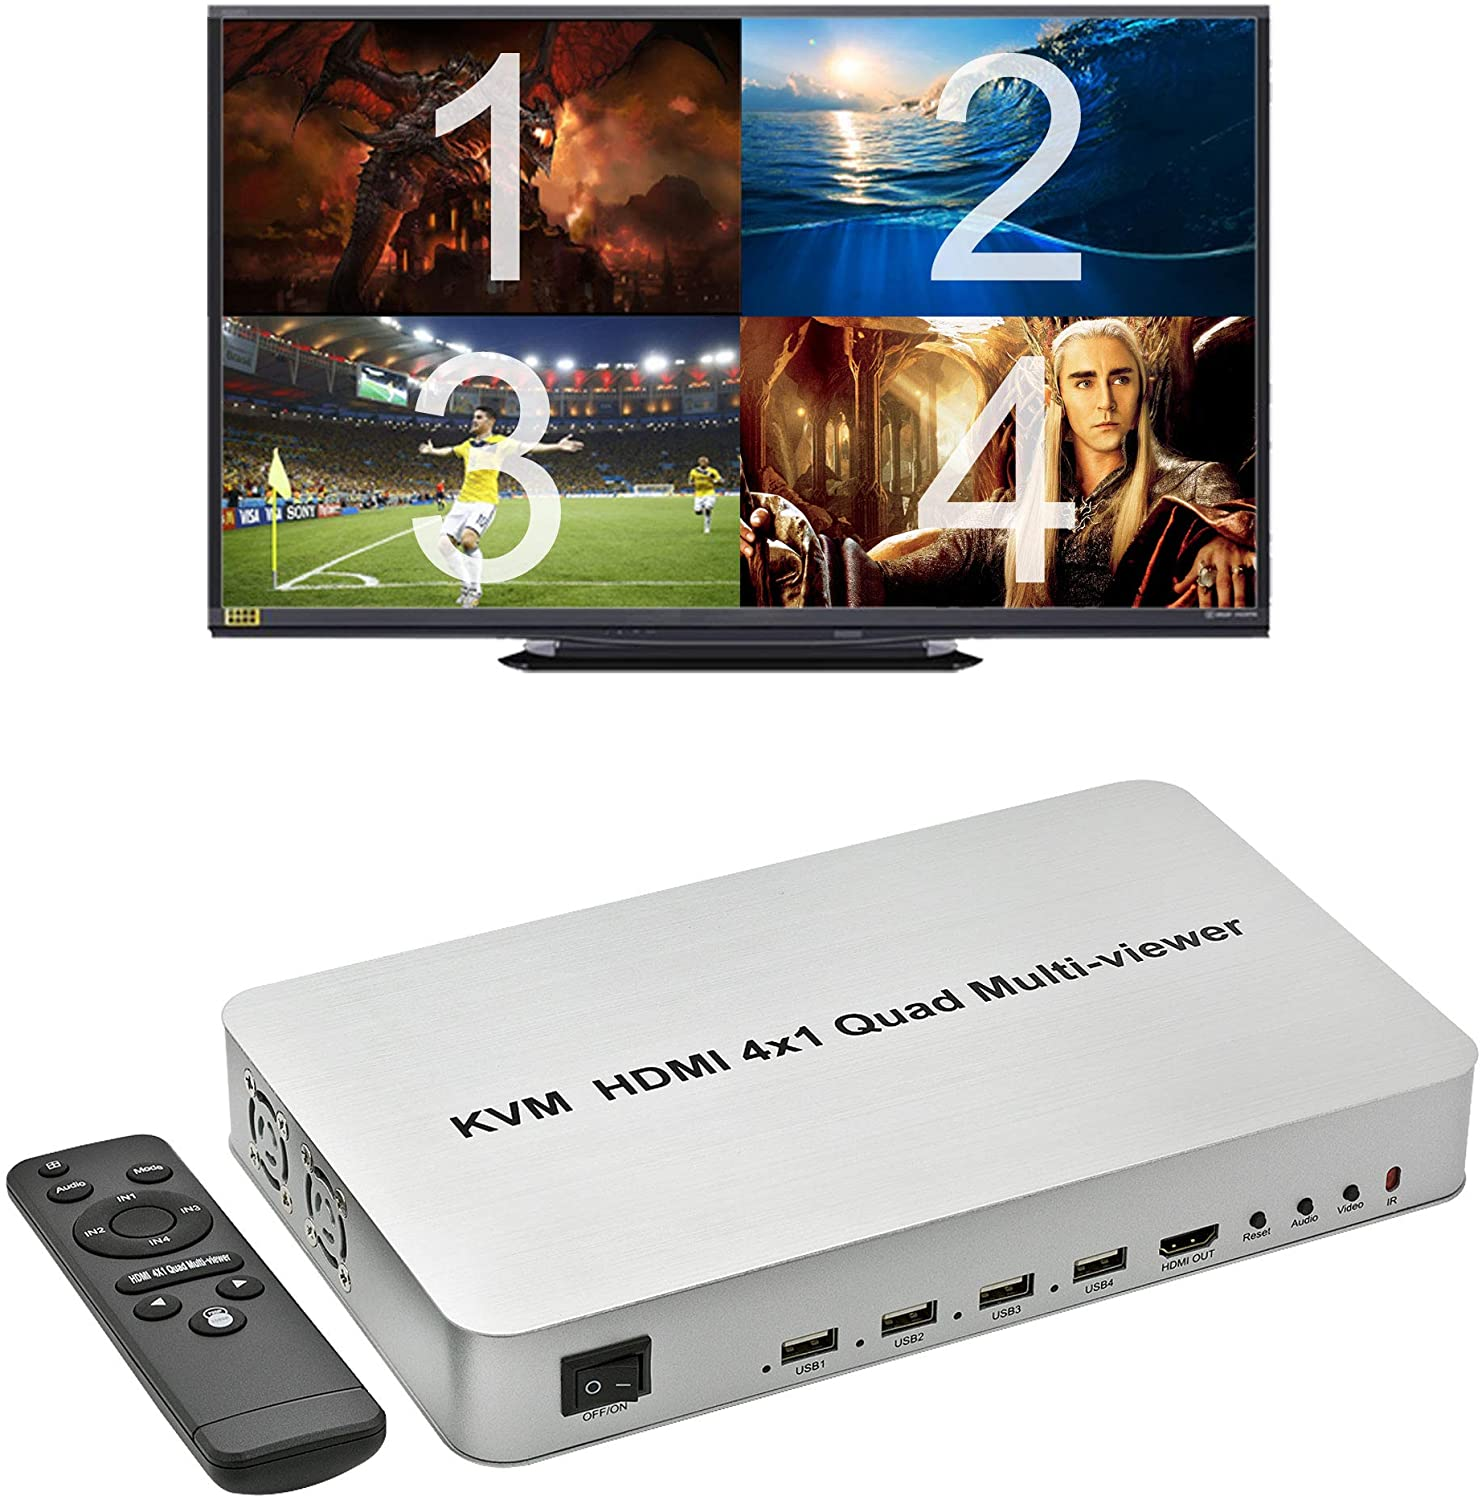 Expert Connect 4 Ports Quad HDMI KVM Multi-Viewer/Screen Divider/Switch | 1080p @ 60Hz | 5 Viewing Modes | USB Switch | Shares 4 USB Devices on 4 Computers